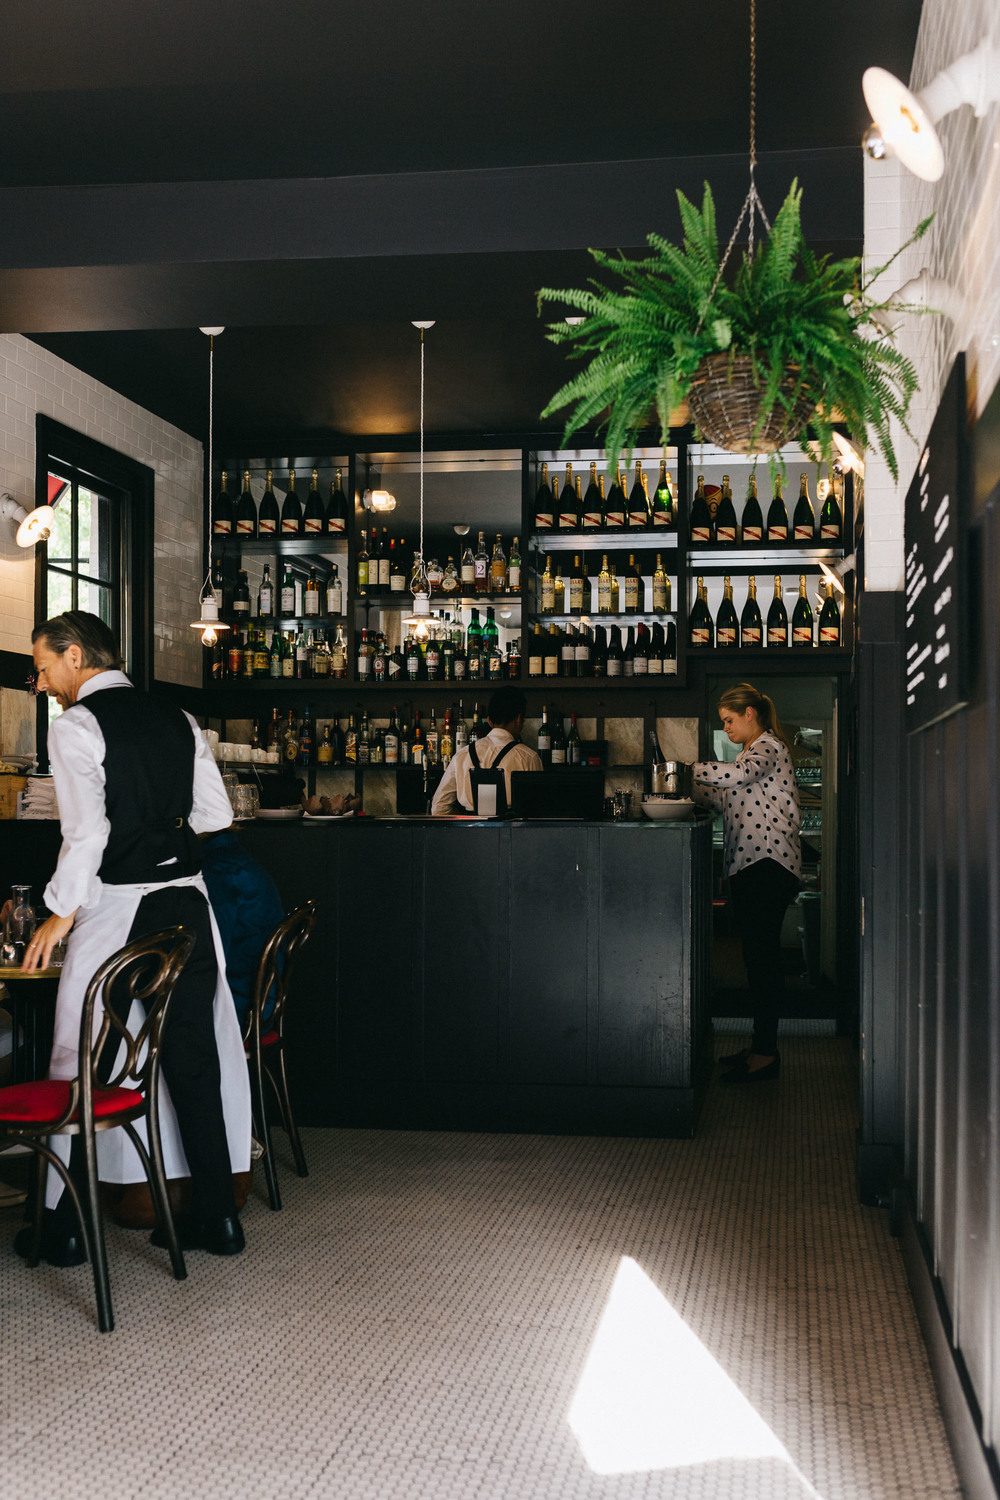 Marnie Hawson, Melbourne lifestyle photographer, for The Downtime Agenda and Justine Schofield at Entrecote